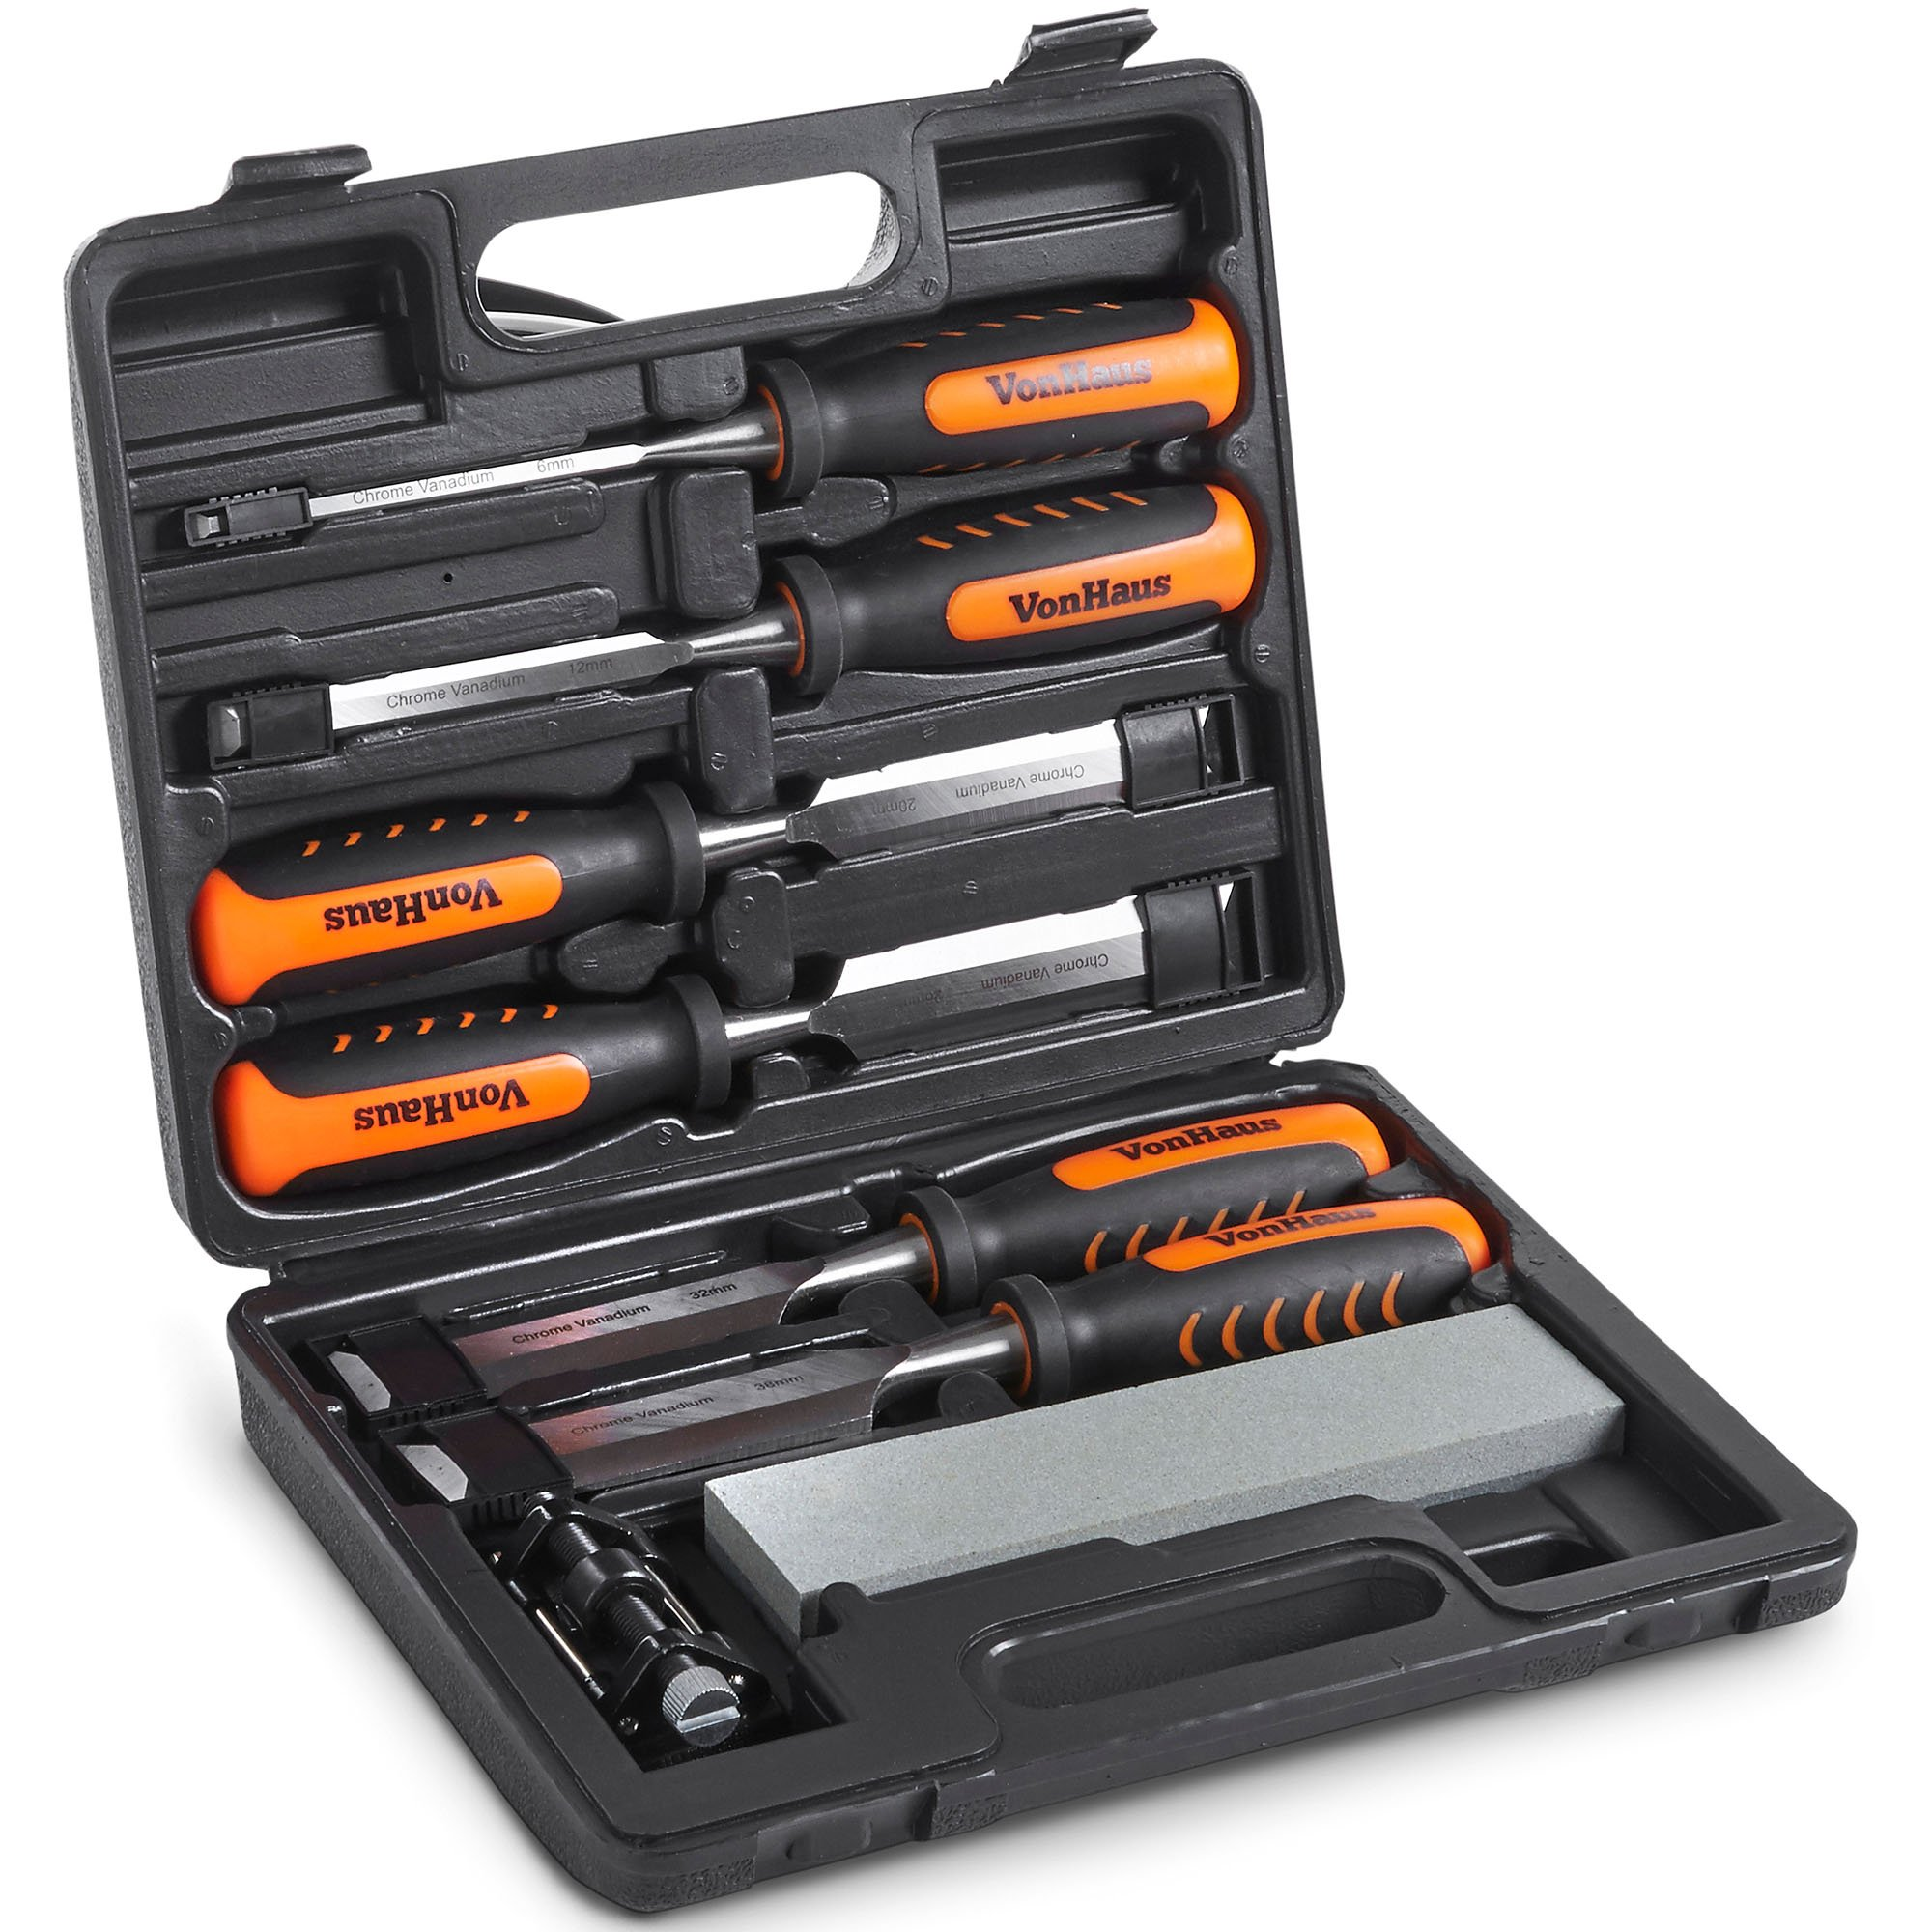 VonHaus 8 pc Craftsman Woodworking Wood Chisel Set for Carving with Honing Guide, Sharpening Stone and Storage Case by VonHaus